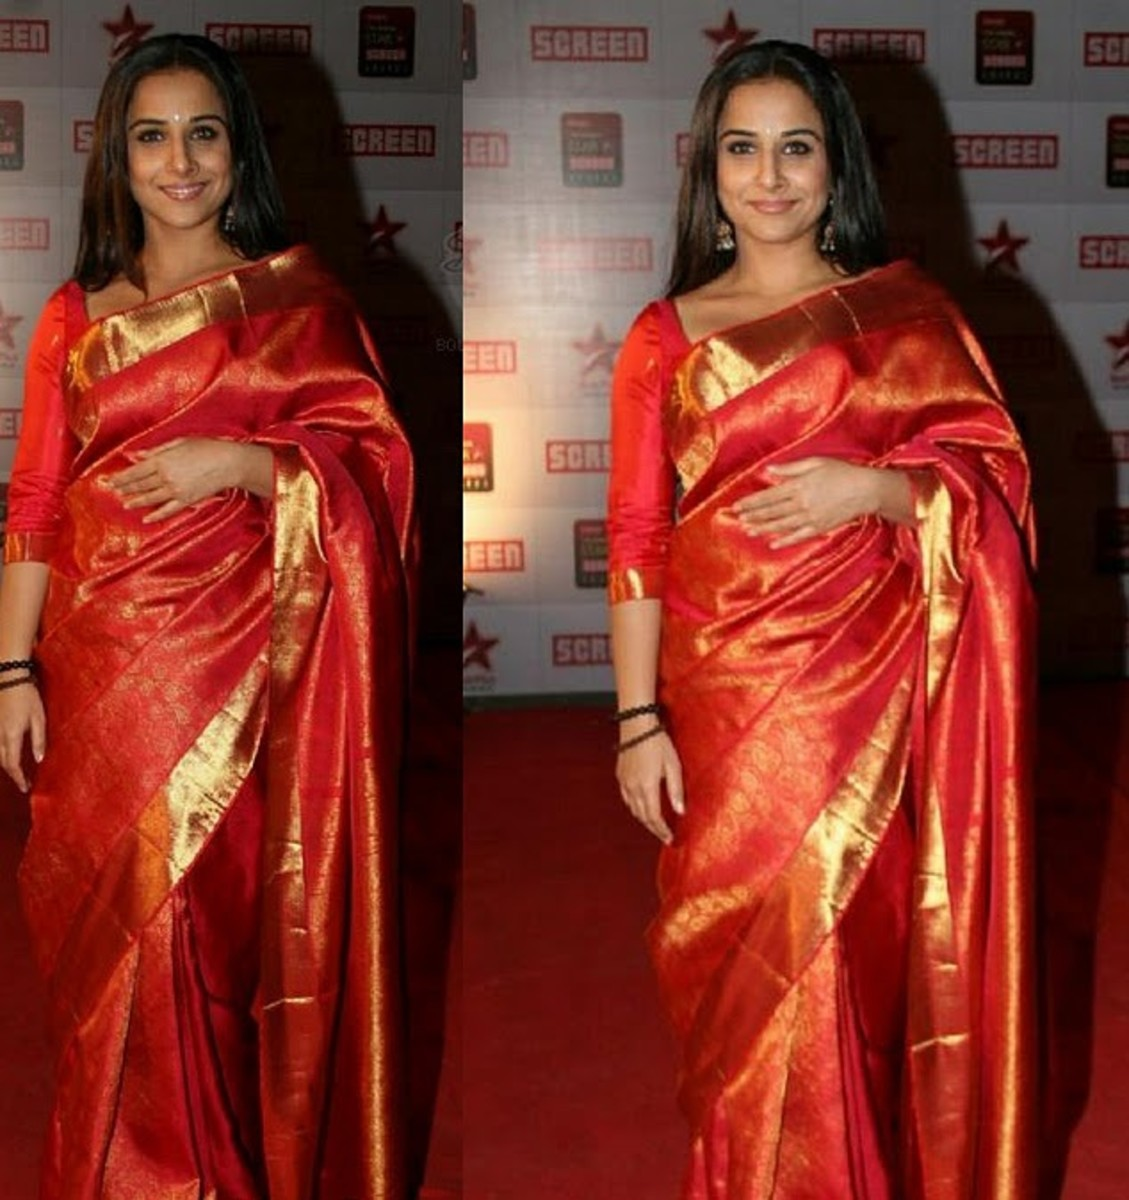 Look how the fluffy kanjivaram silk katan saree does not drape nicely around Vidya making her look fatter than she actually is.